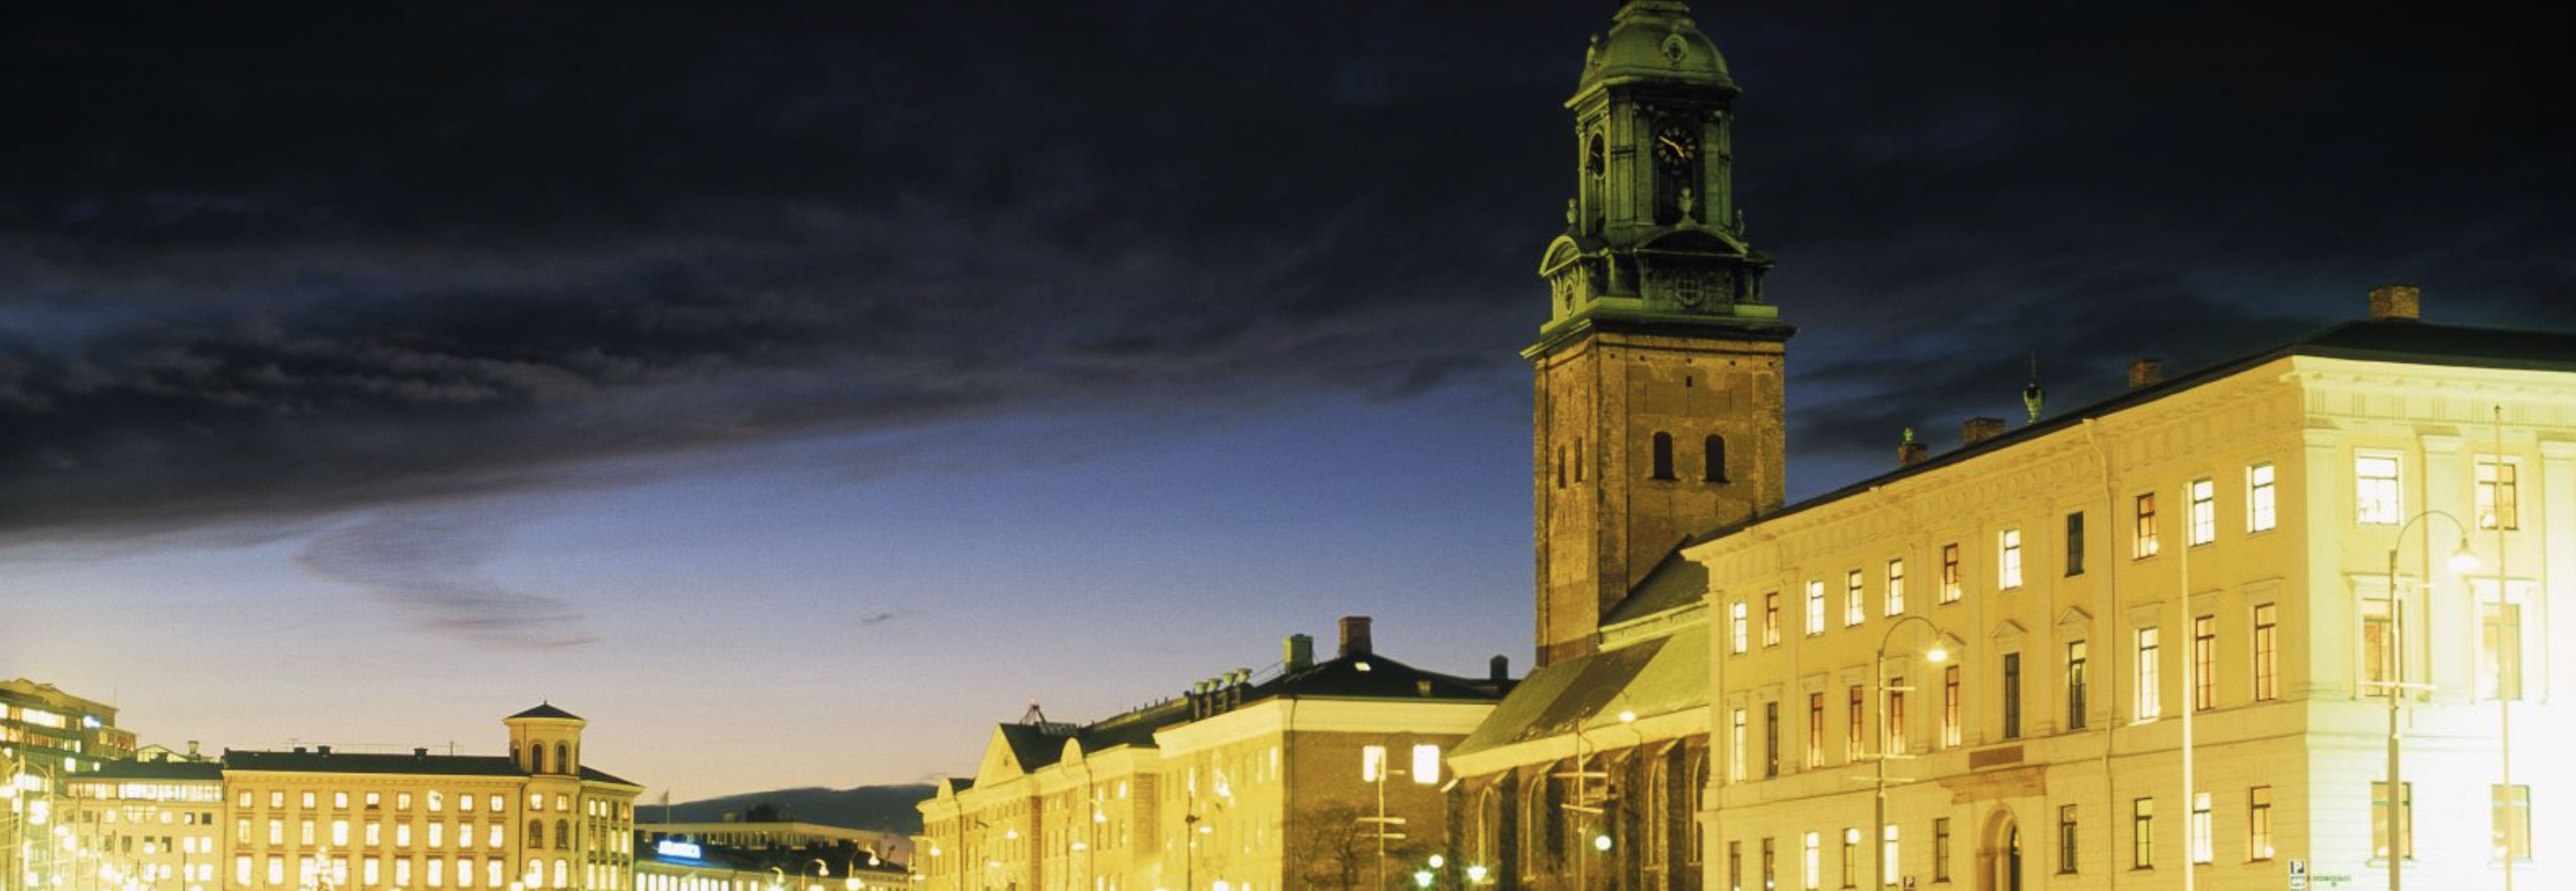 Night view on Christinae kyrka is beautiful church located in the city centre, more info at https://www.goteborg.com/en/christinae-kyrka/